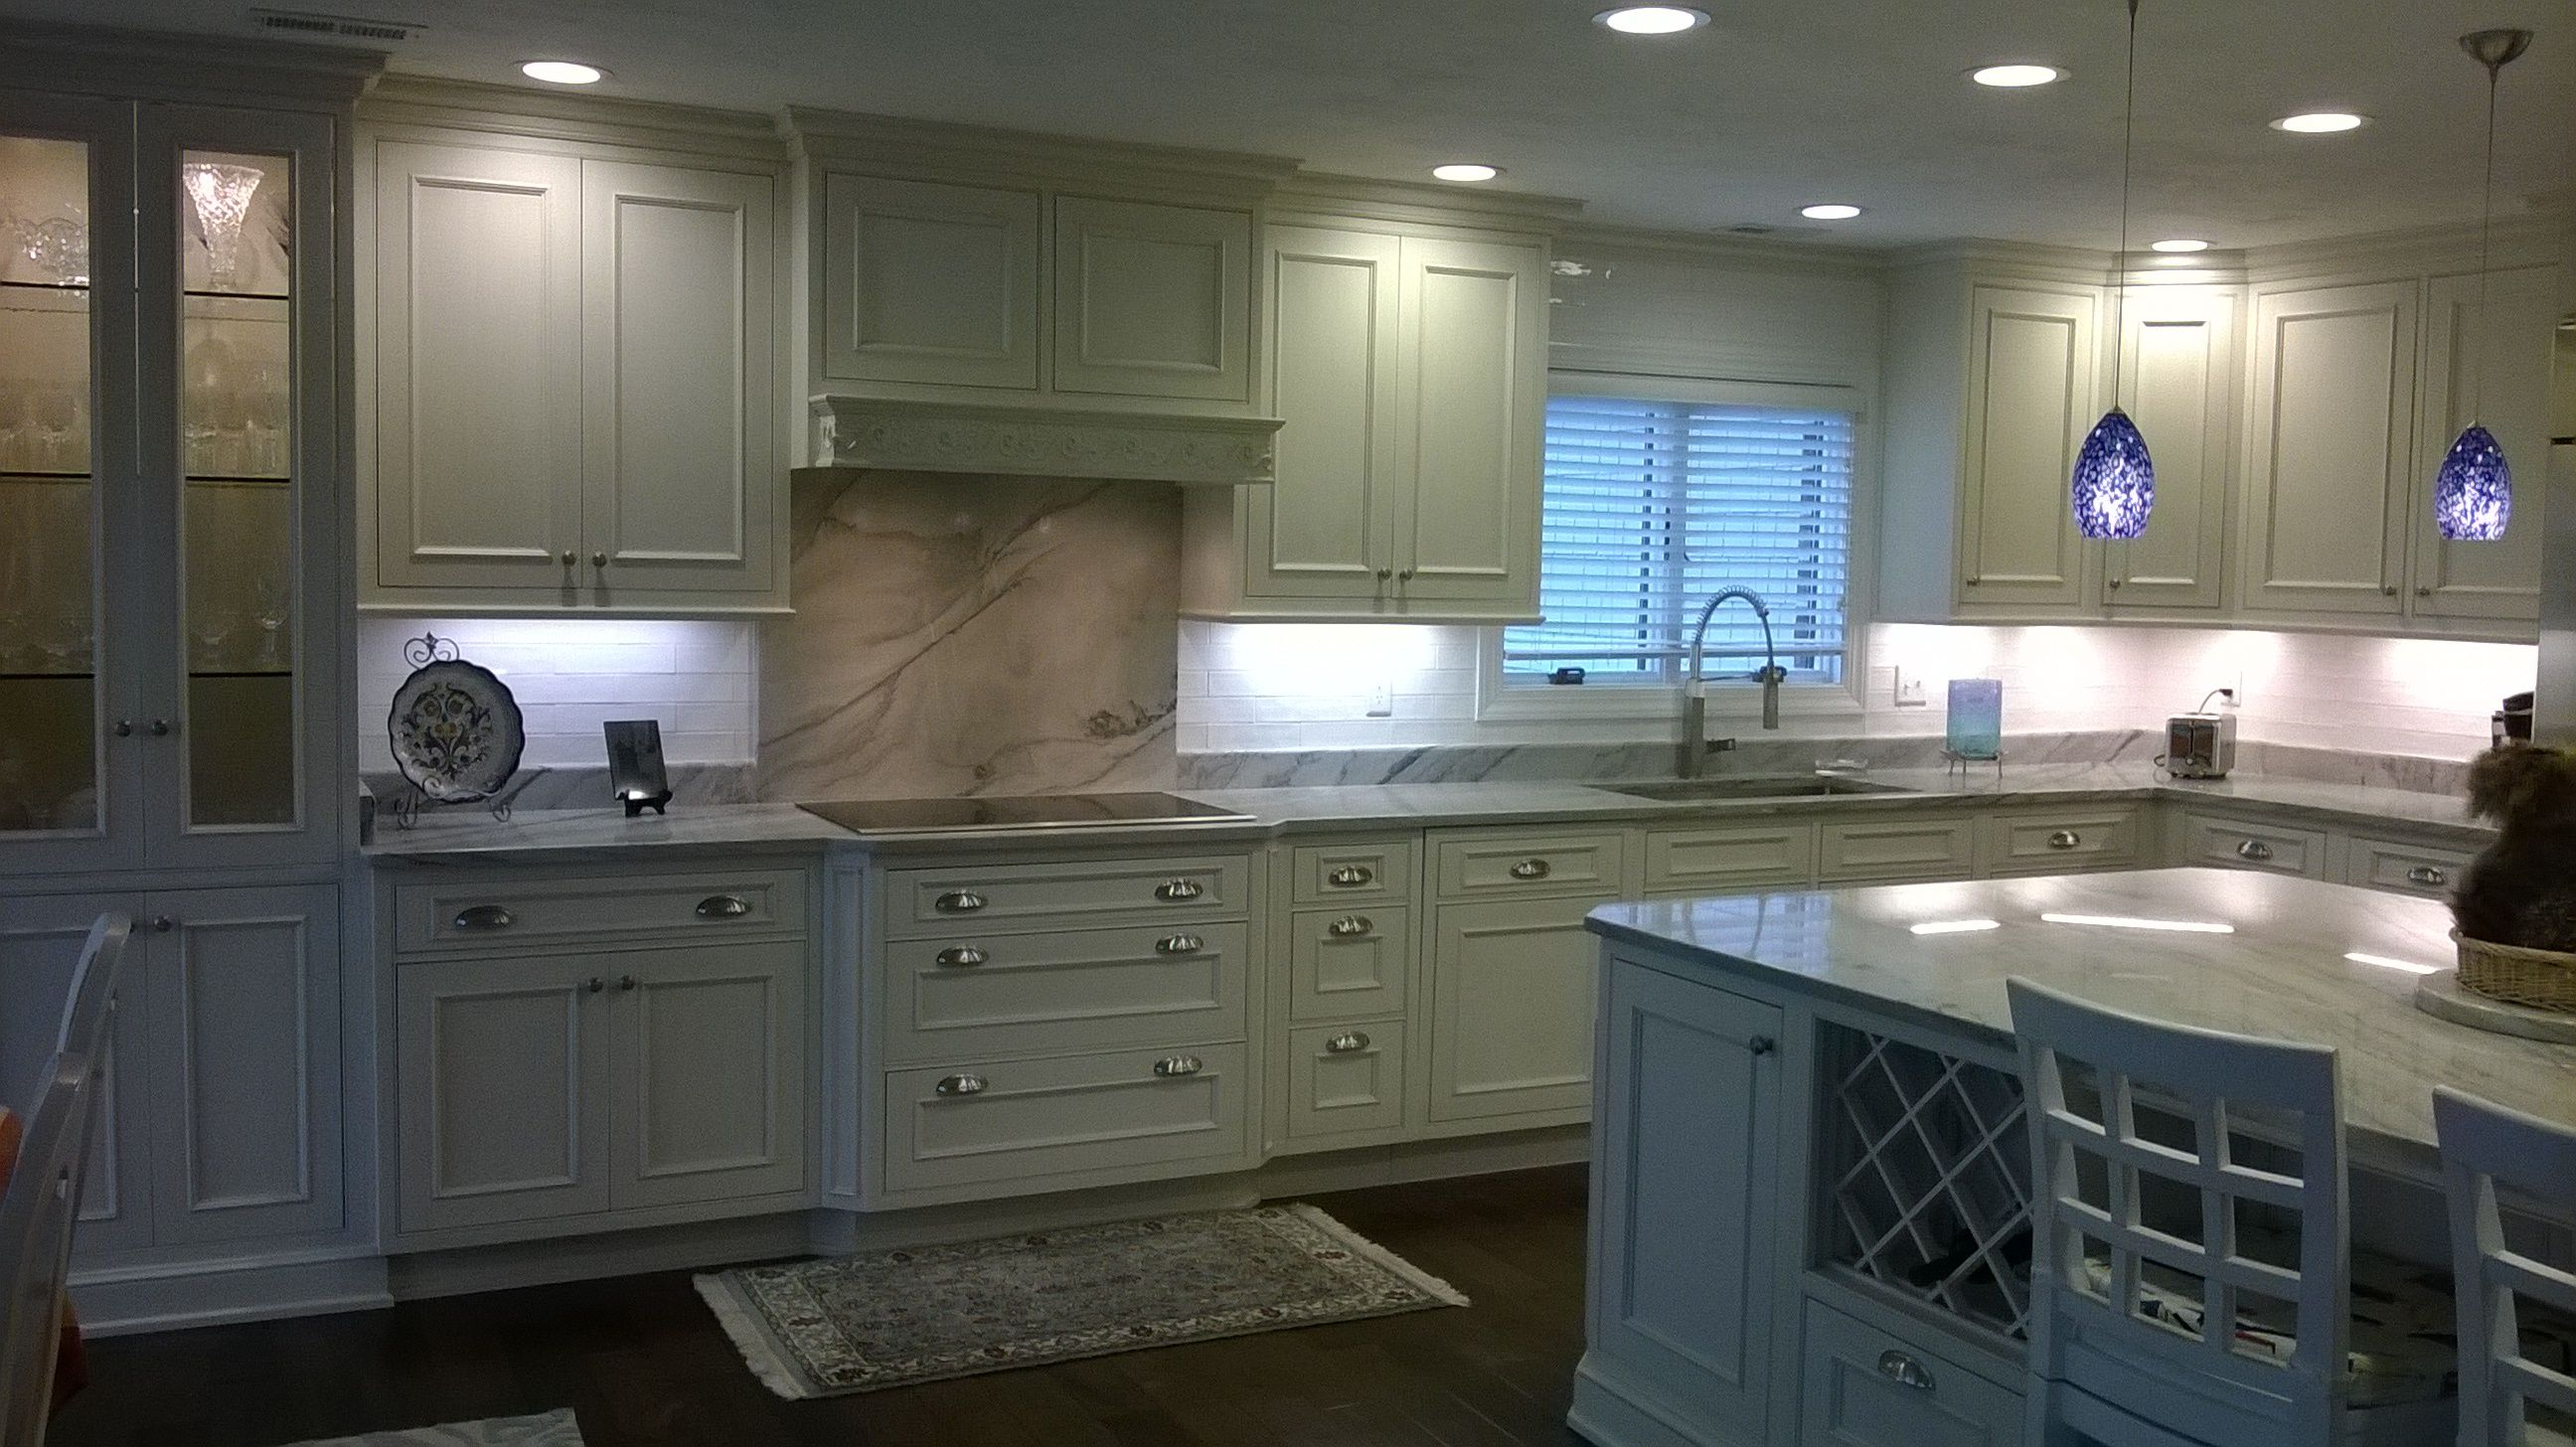 Brookhaven By Wood Mode Custom Kitchens Kitchen And Bath Remodeling Kitchen And Bath